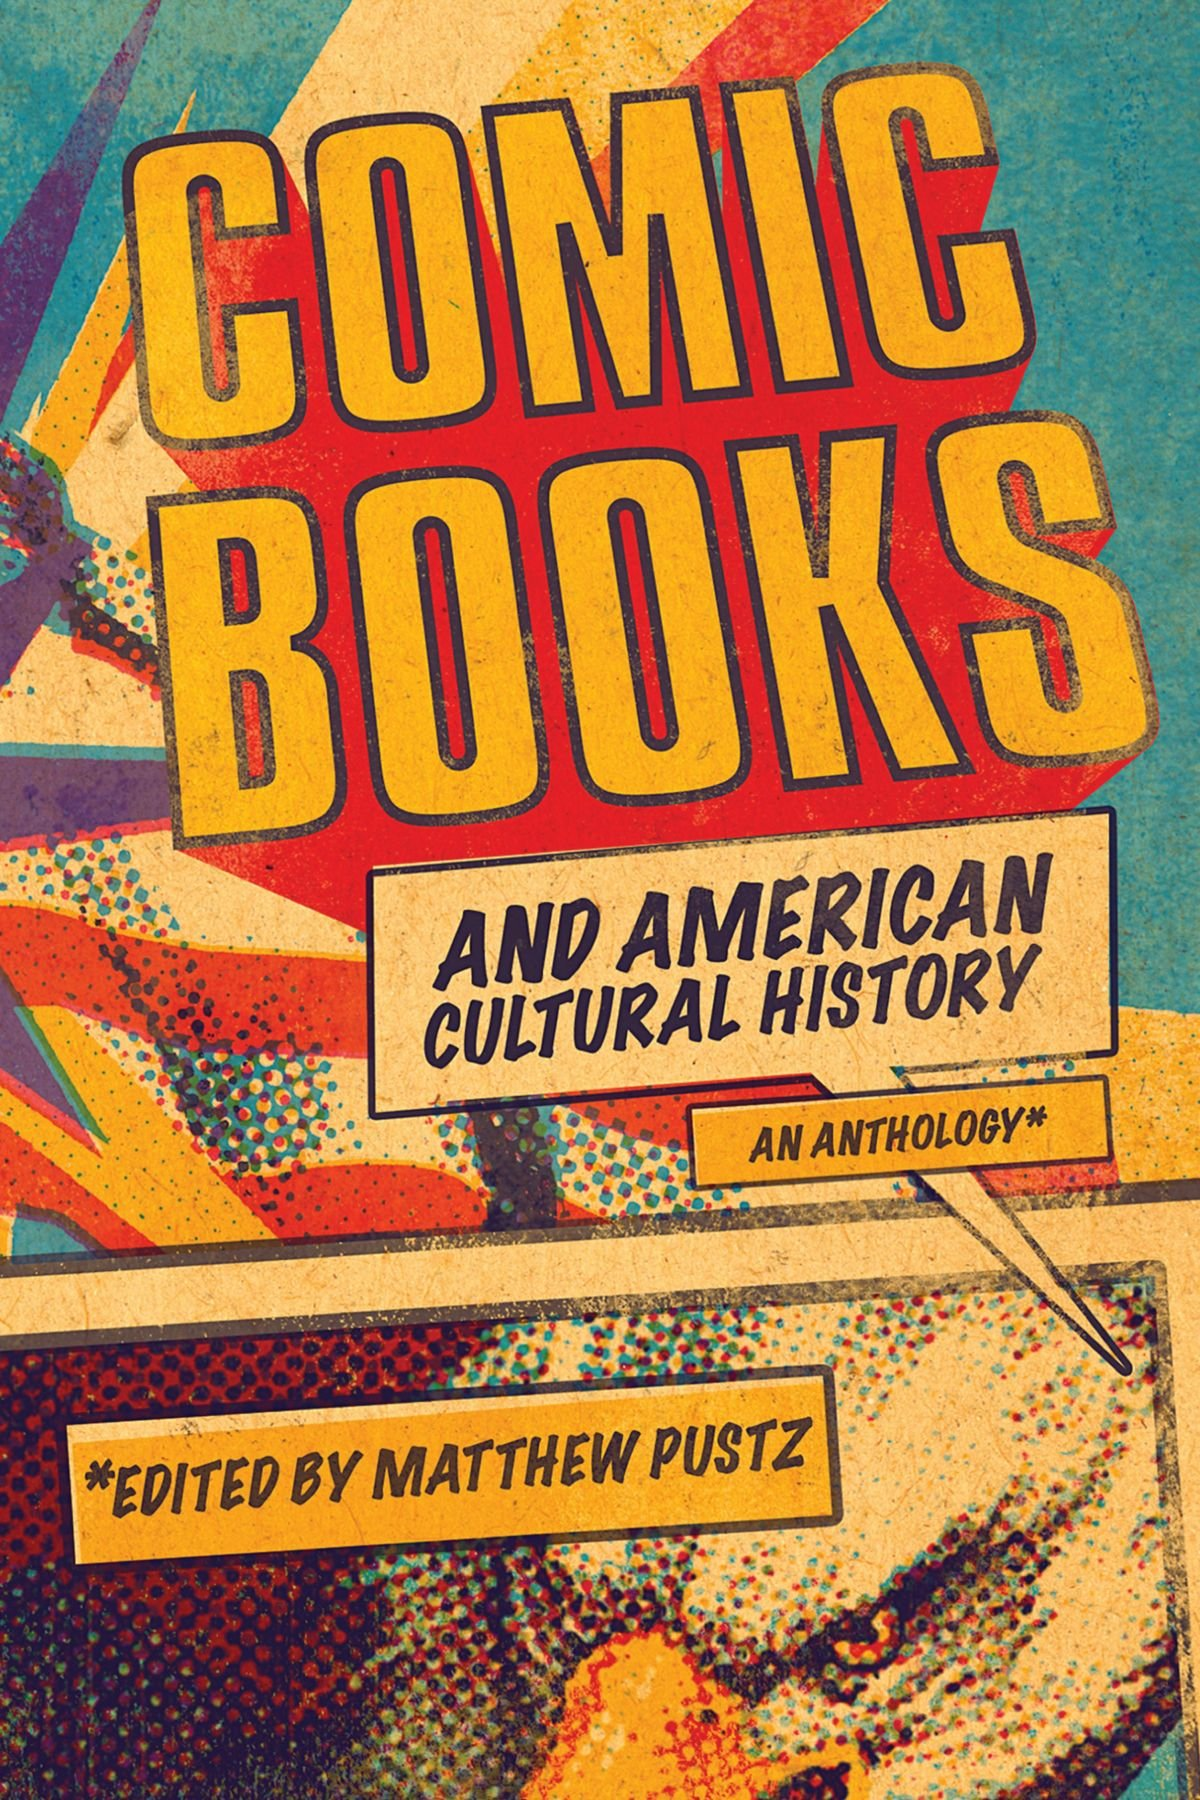 Comic Books and American Cultural History: An Anthology